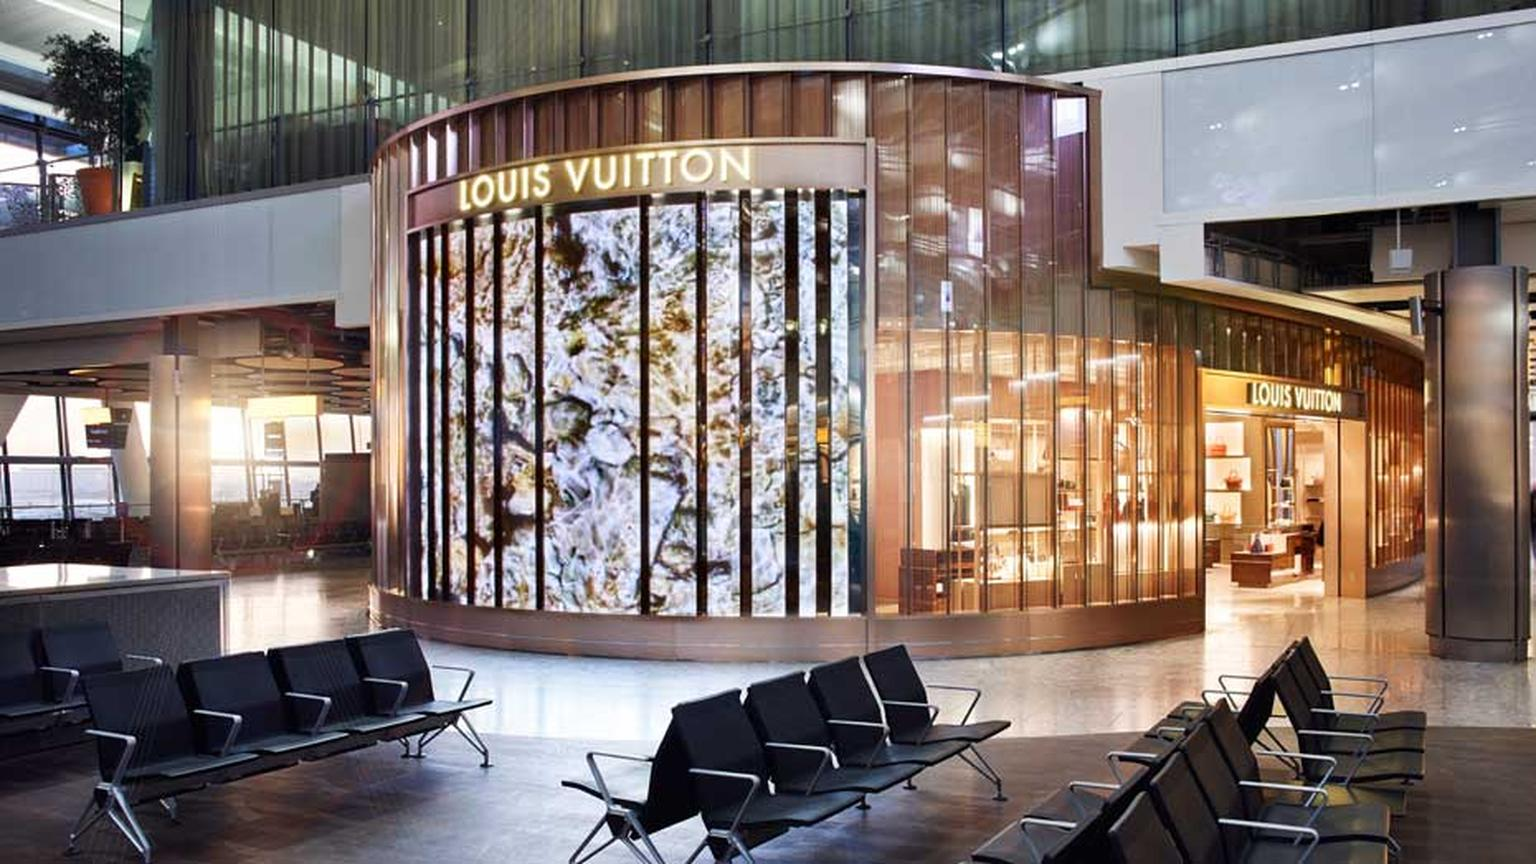 Louis Vuitton has commissioned French artist Ange Leccia to make a film depicting the Mediterranean Sea that will be shown on a screen attached to the shop's transparent exterior.